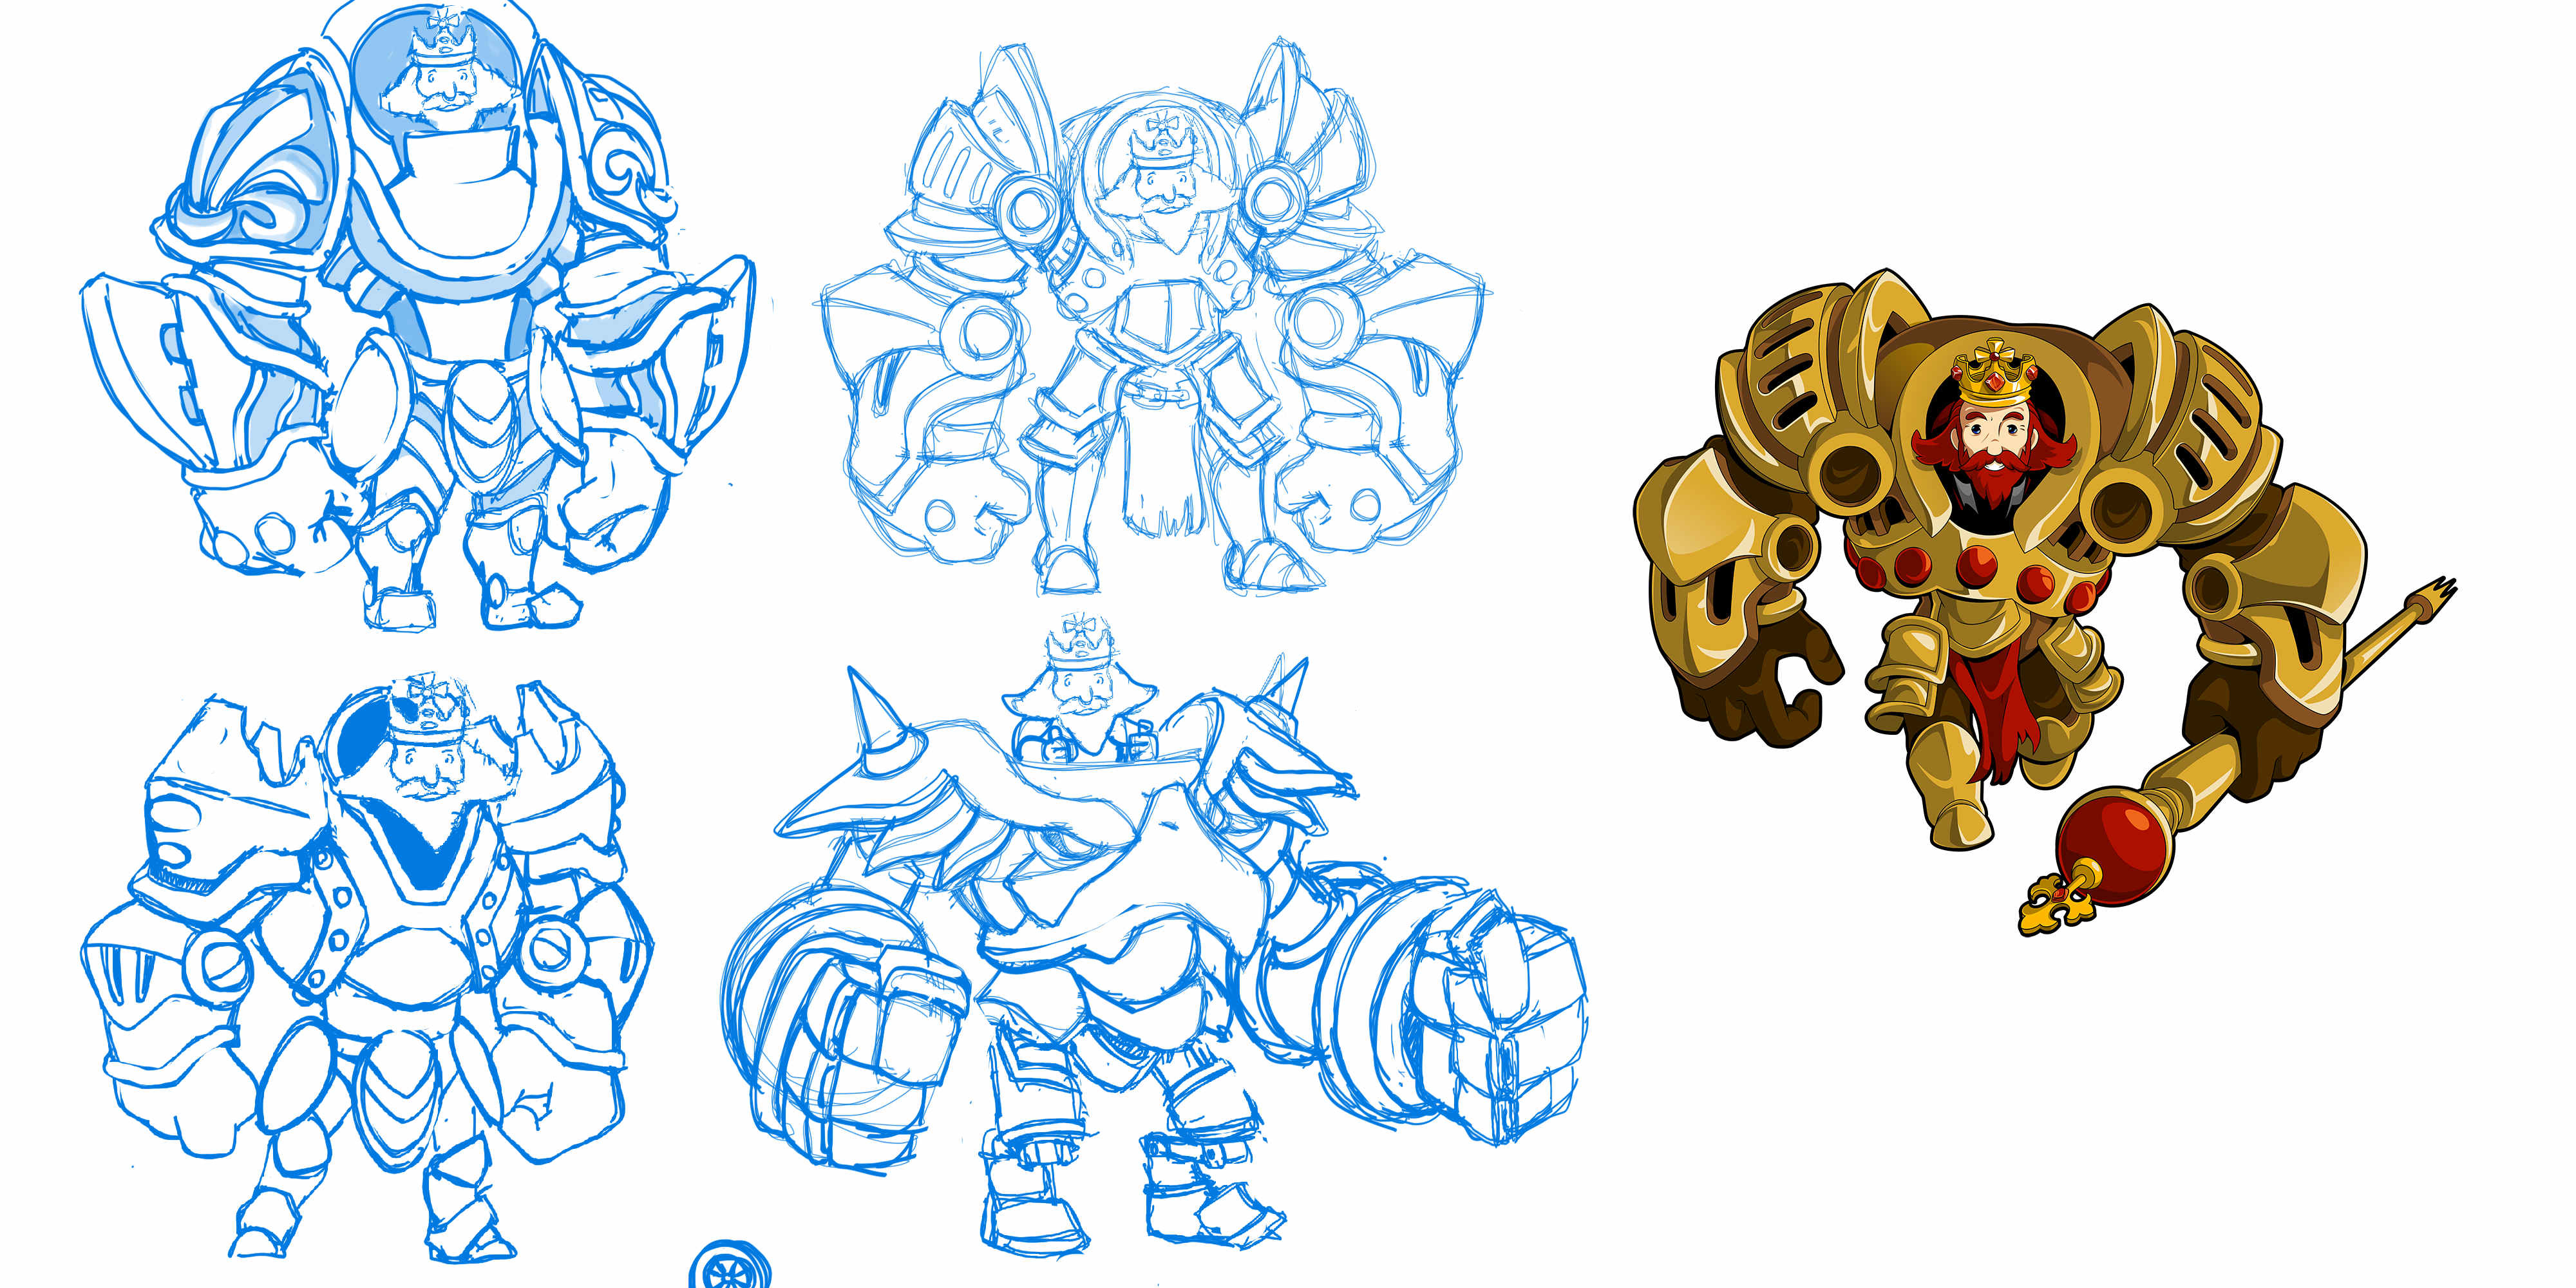 Exclusive: Here's what a Shovel Knight boss looks like from start to finish screenshot